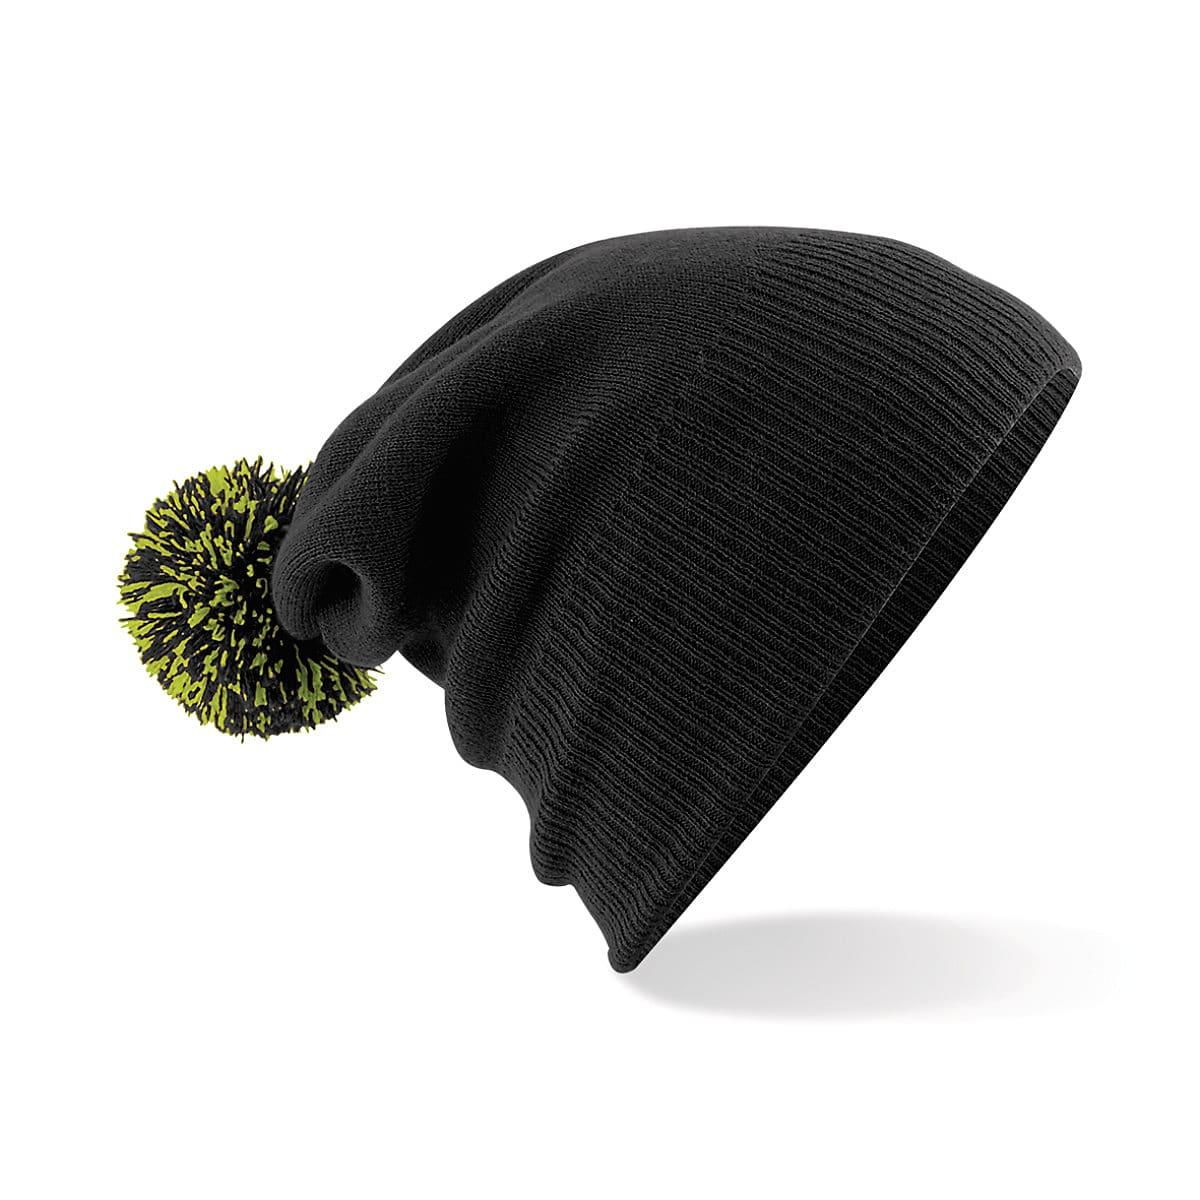 Beechfield Snowstar Beanie Hat in Black / Lime Green (Product Code: B450)